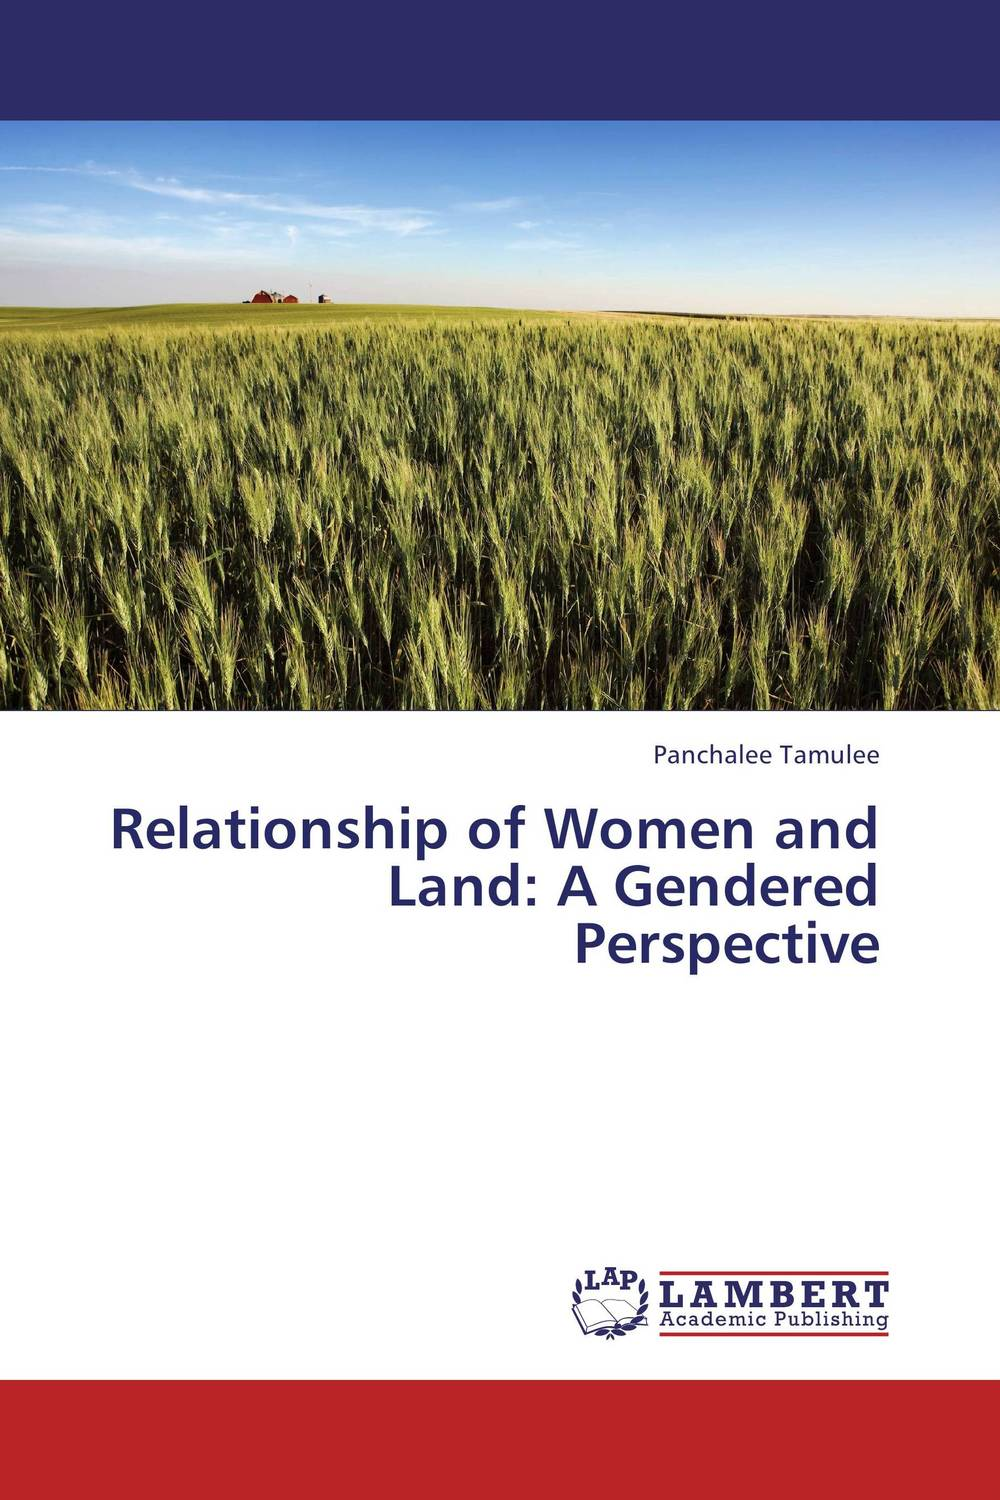 Relationship of Women and Land: A Gendered Perspective salahuddin khan relationship among qualifications experience gender